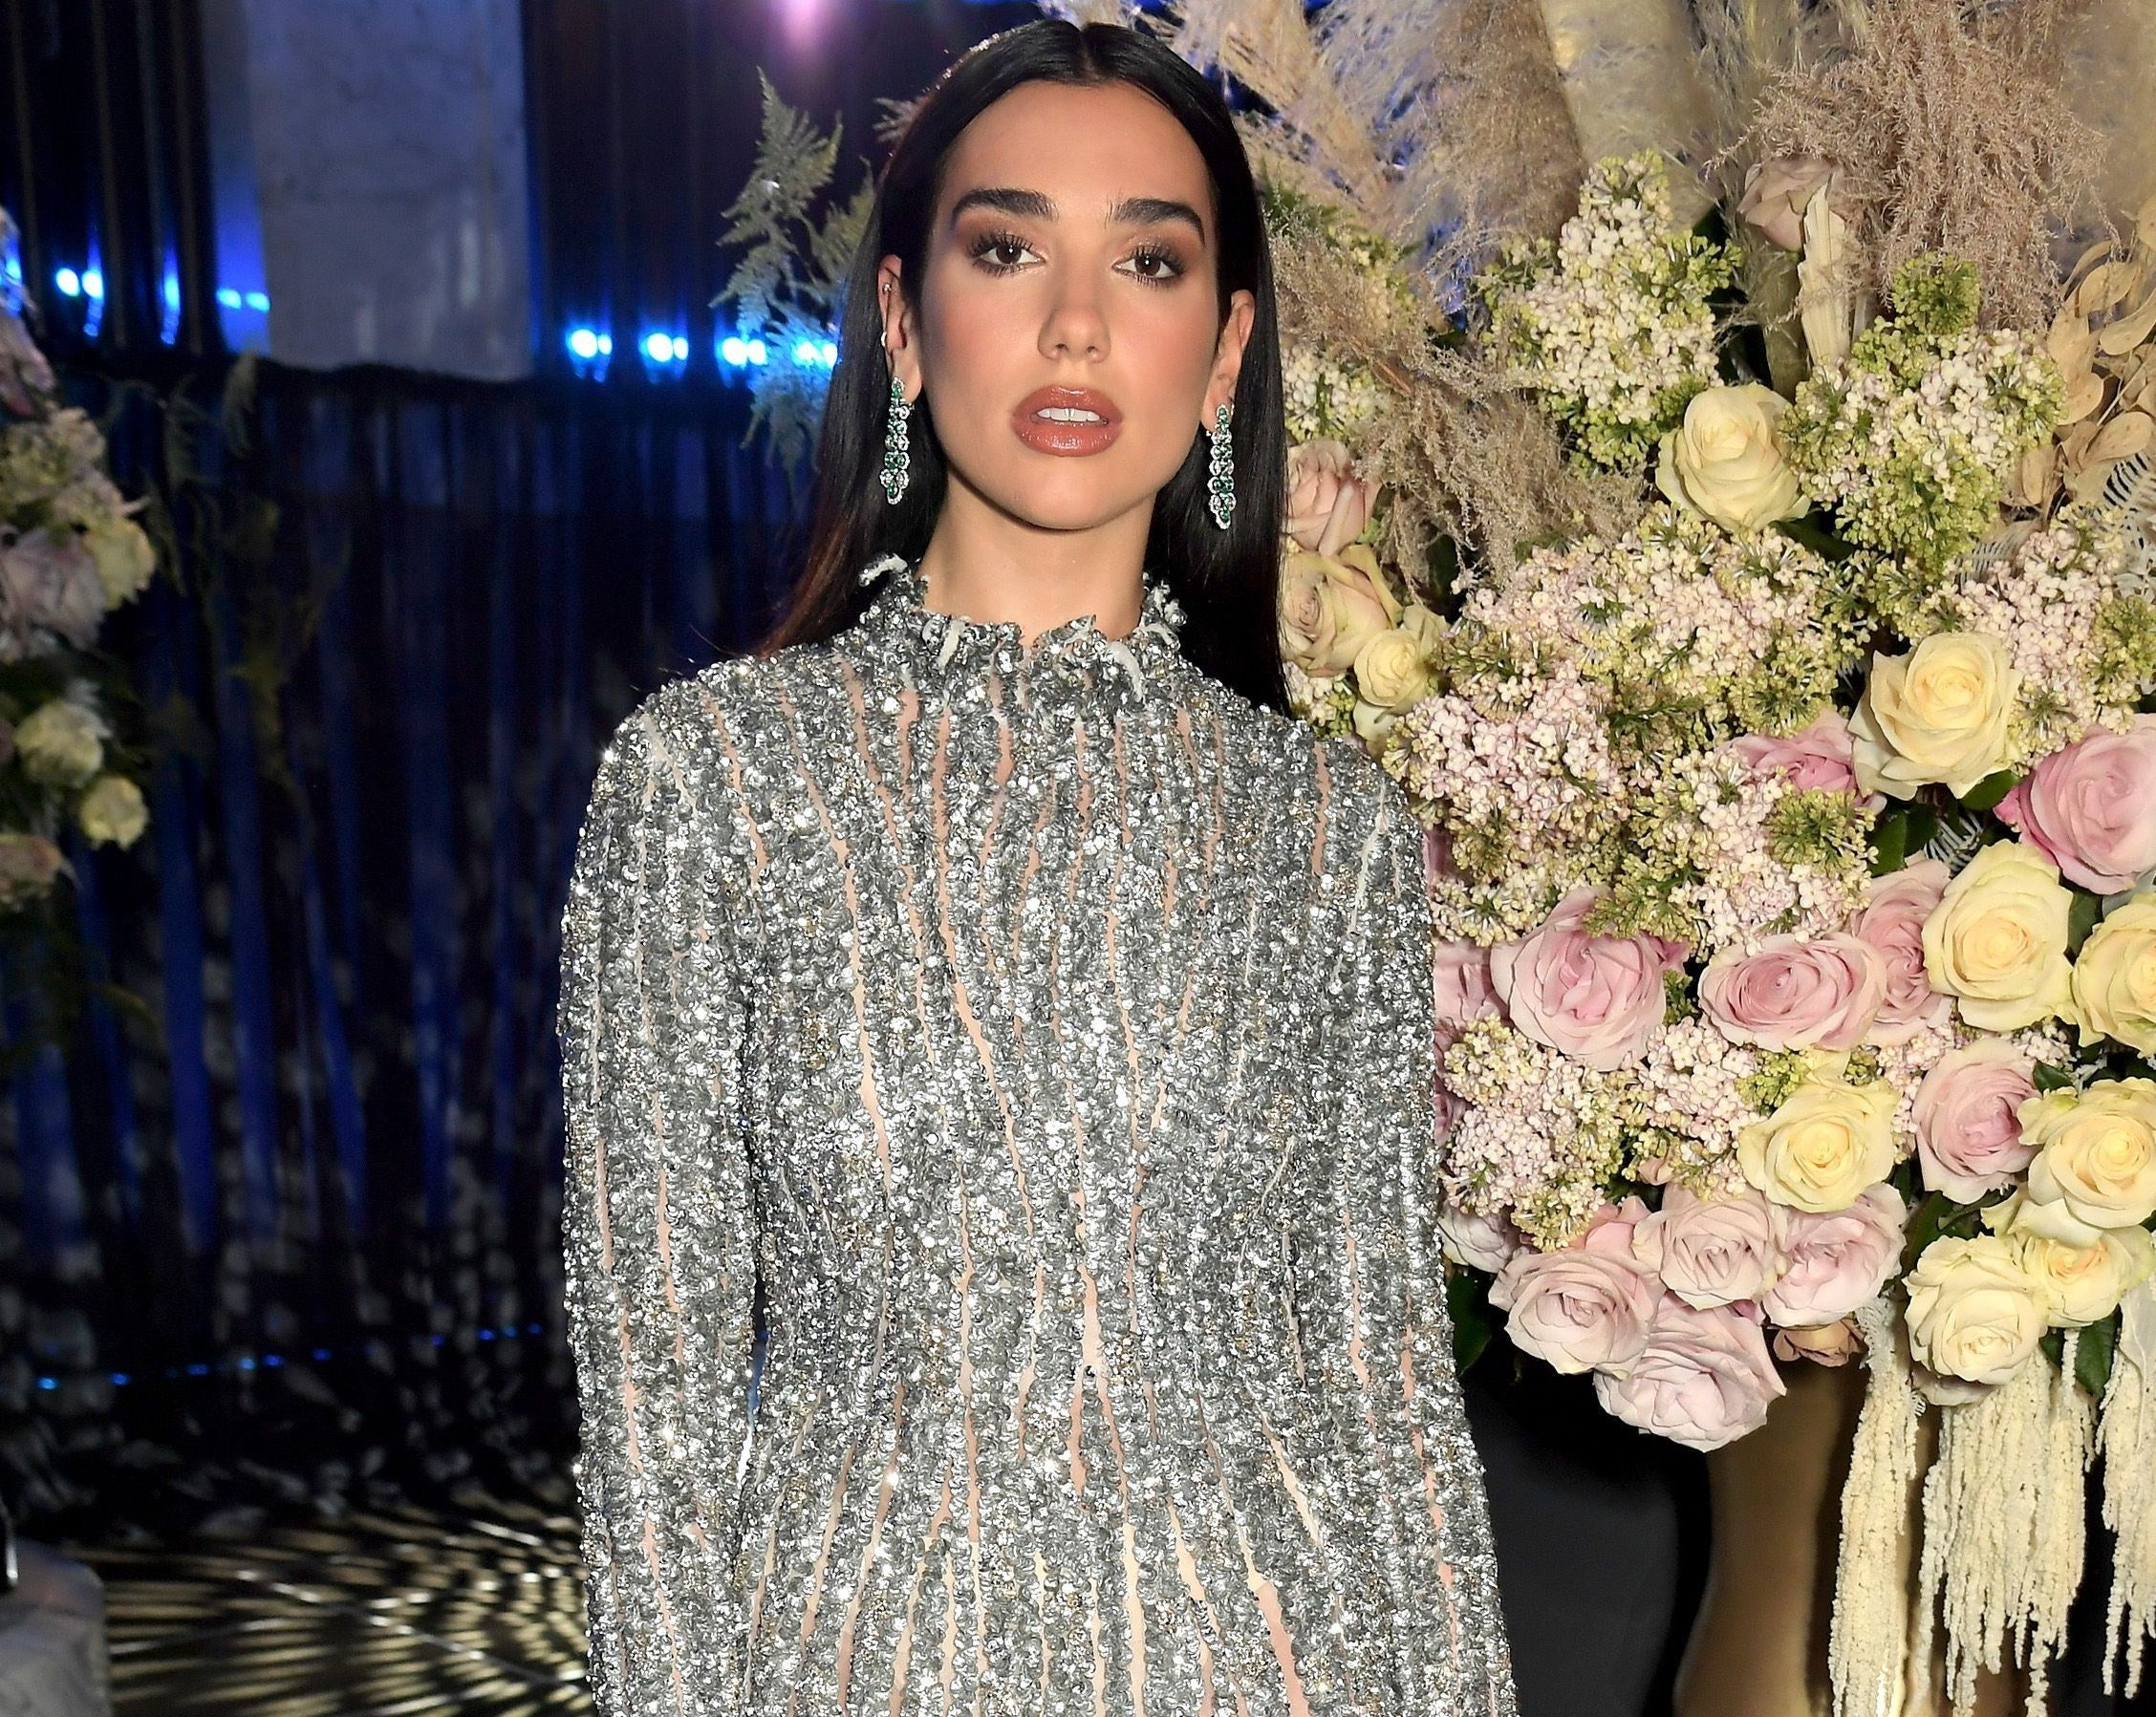 Dua keeps a straight face while wearing a silver dress